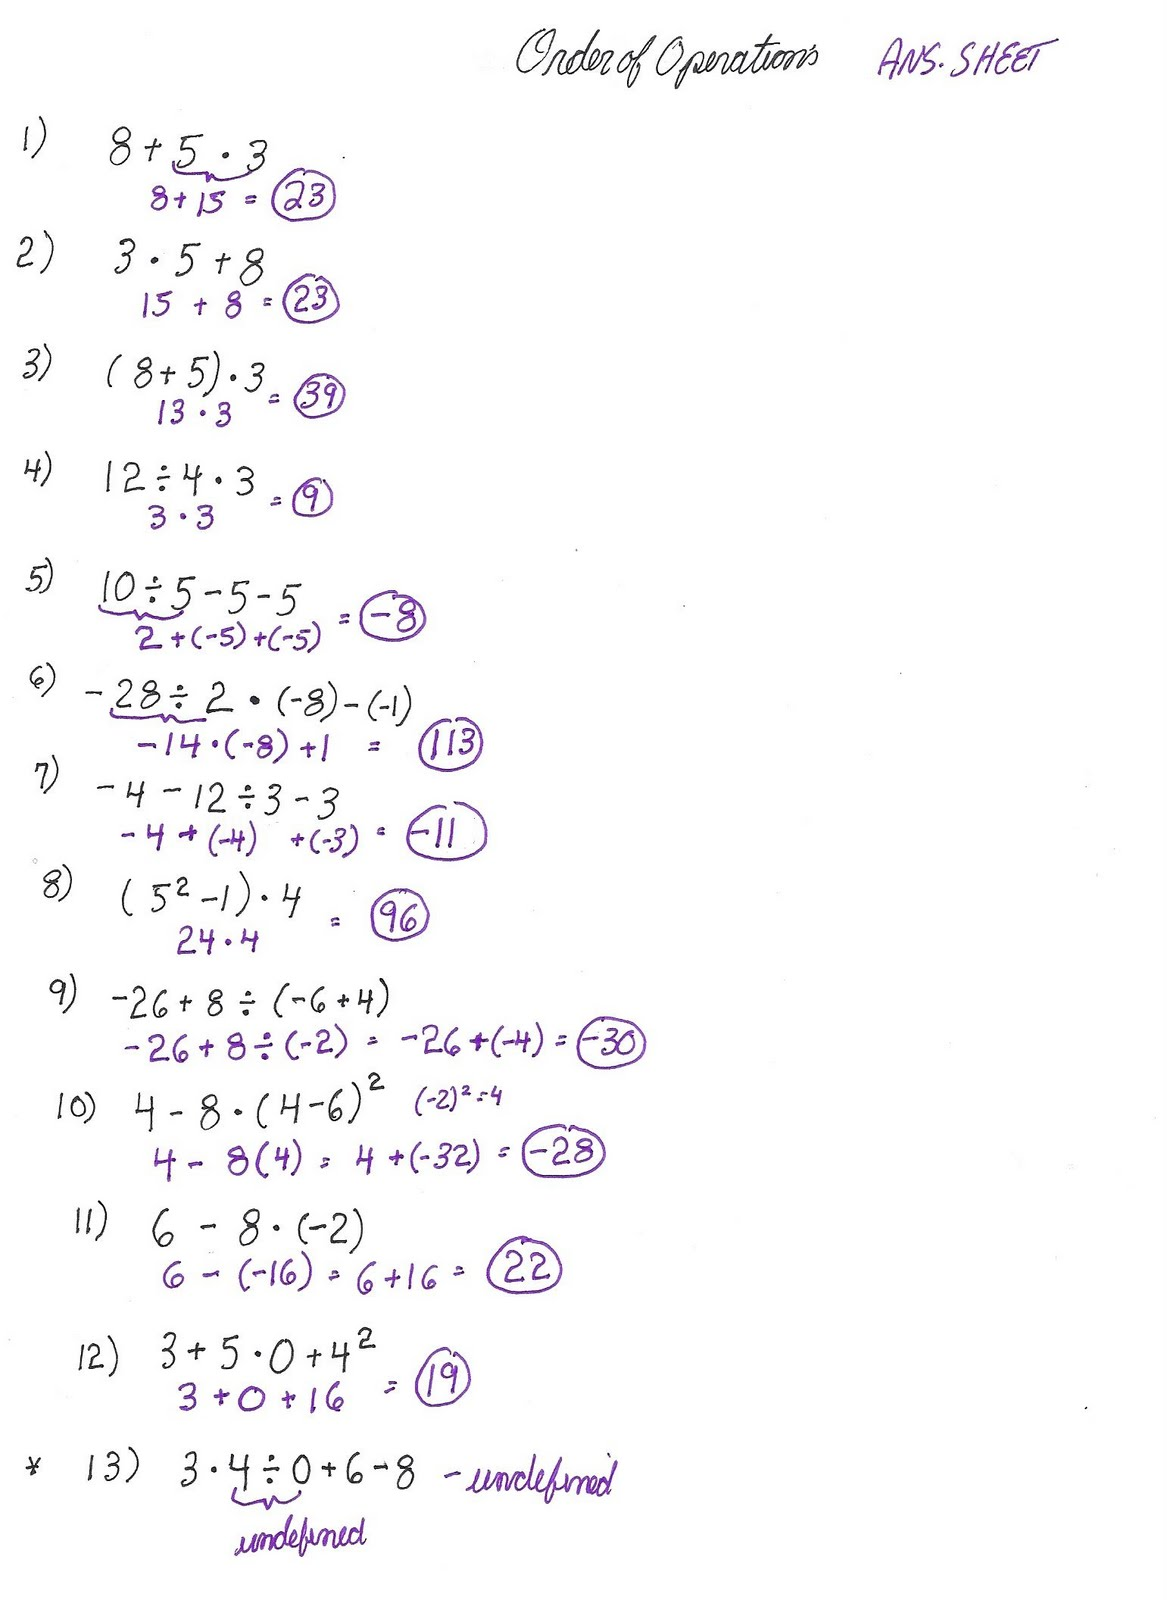 math worksheet : cobb adult ed math order of operations worksheet solutions : Math Worksheets Order Of Operations